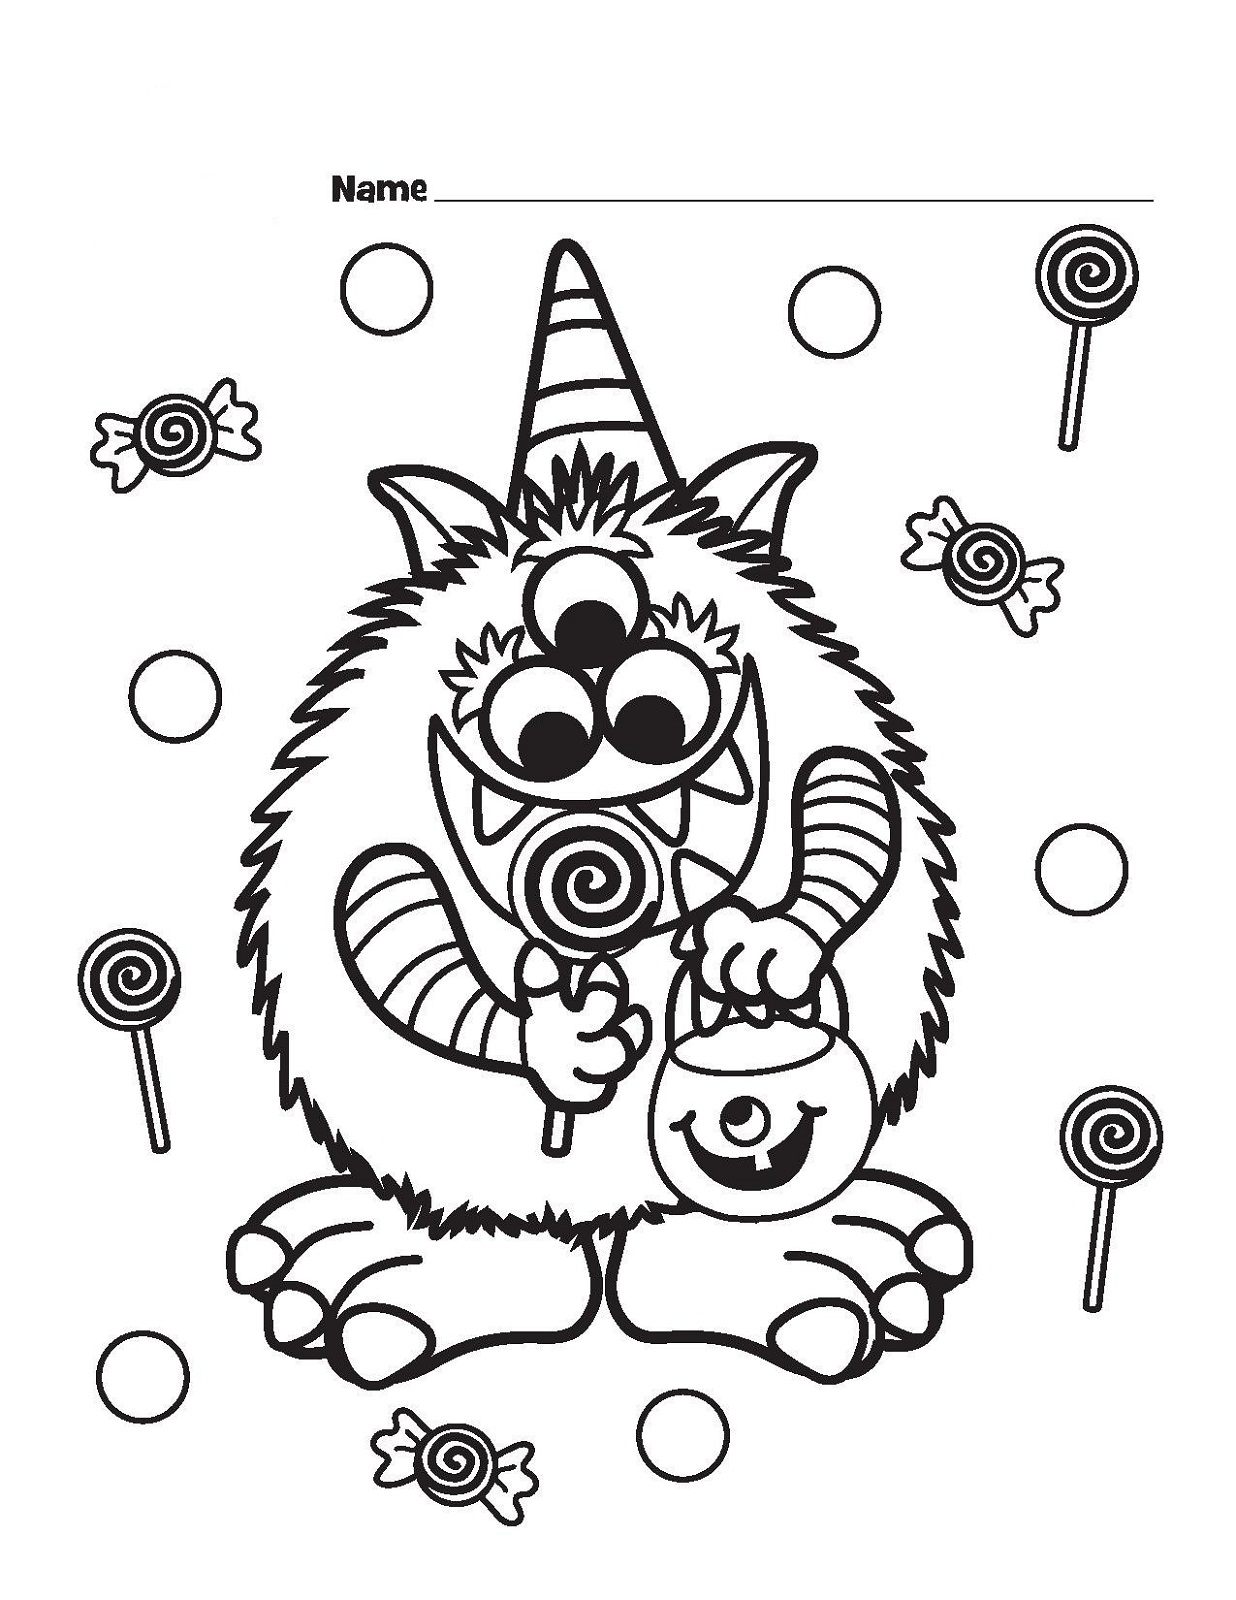 Candyland Coloring Pages For Kids